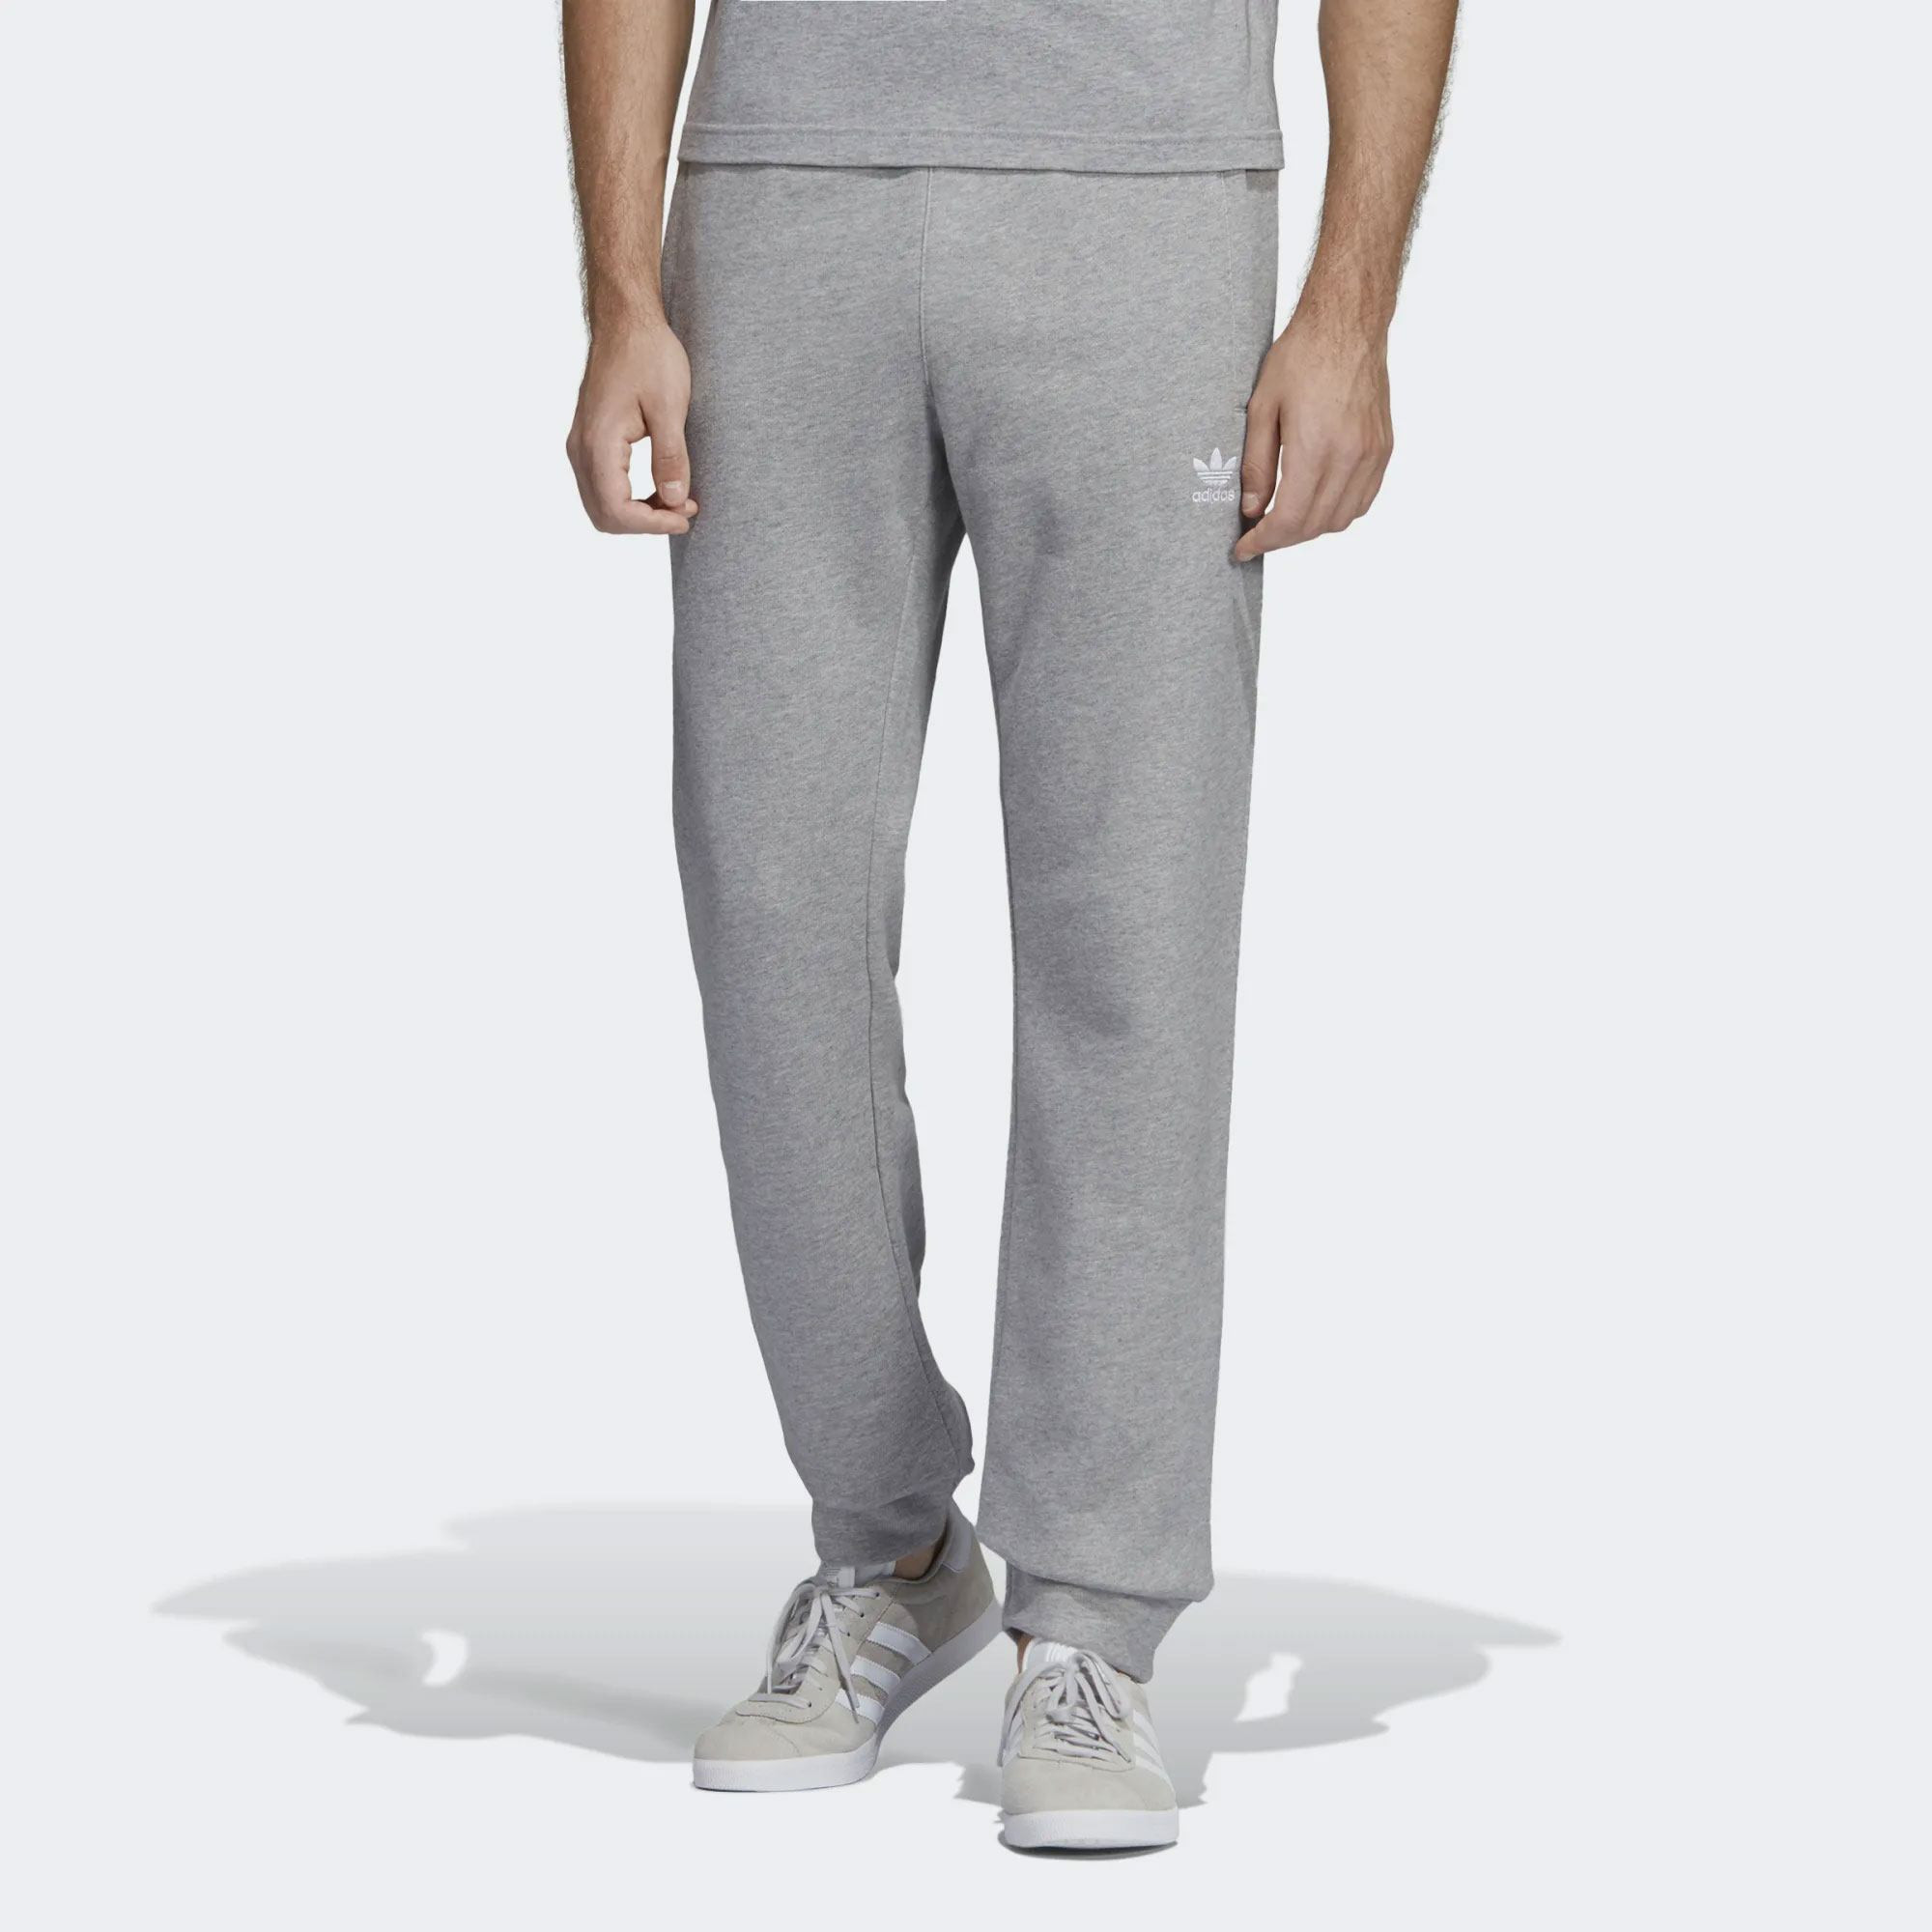 adidas Originals Trefoil Essentials Men'S Pants (9000032255_7747)